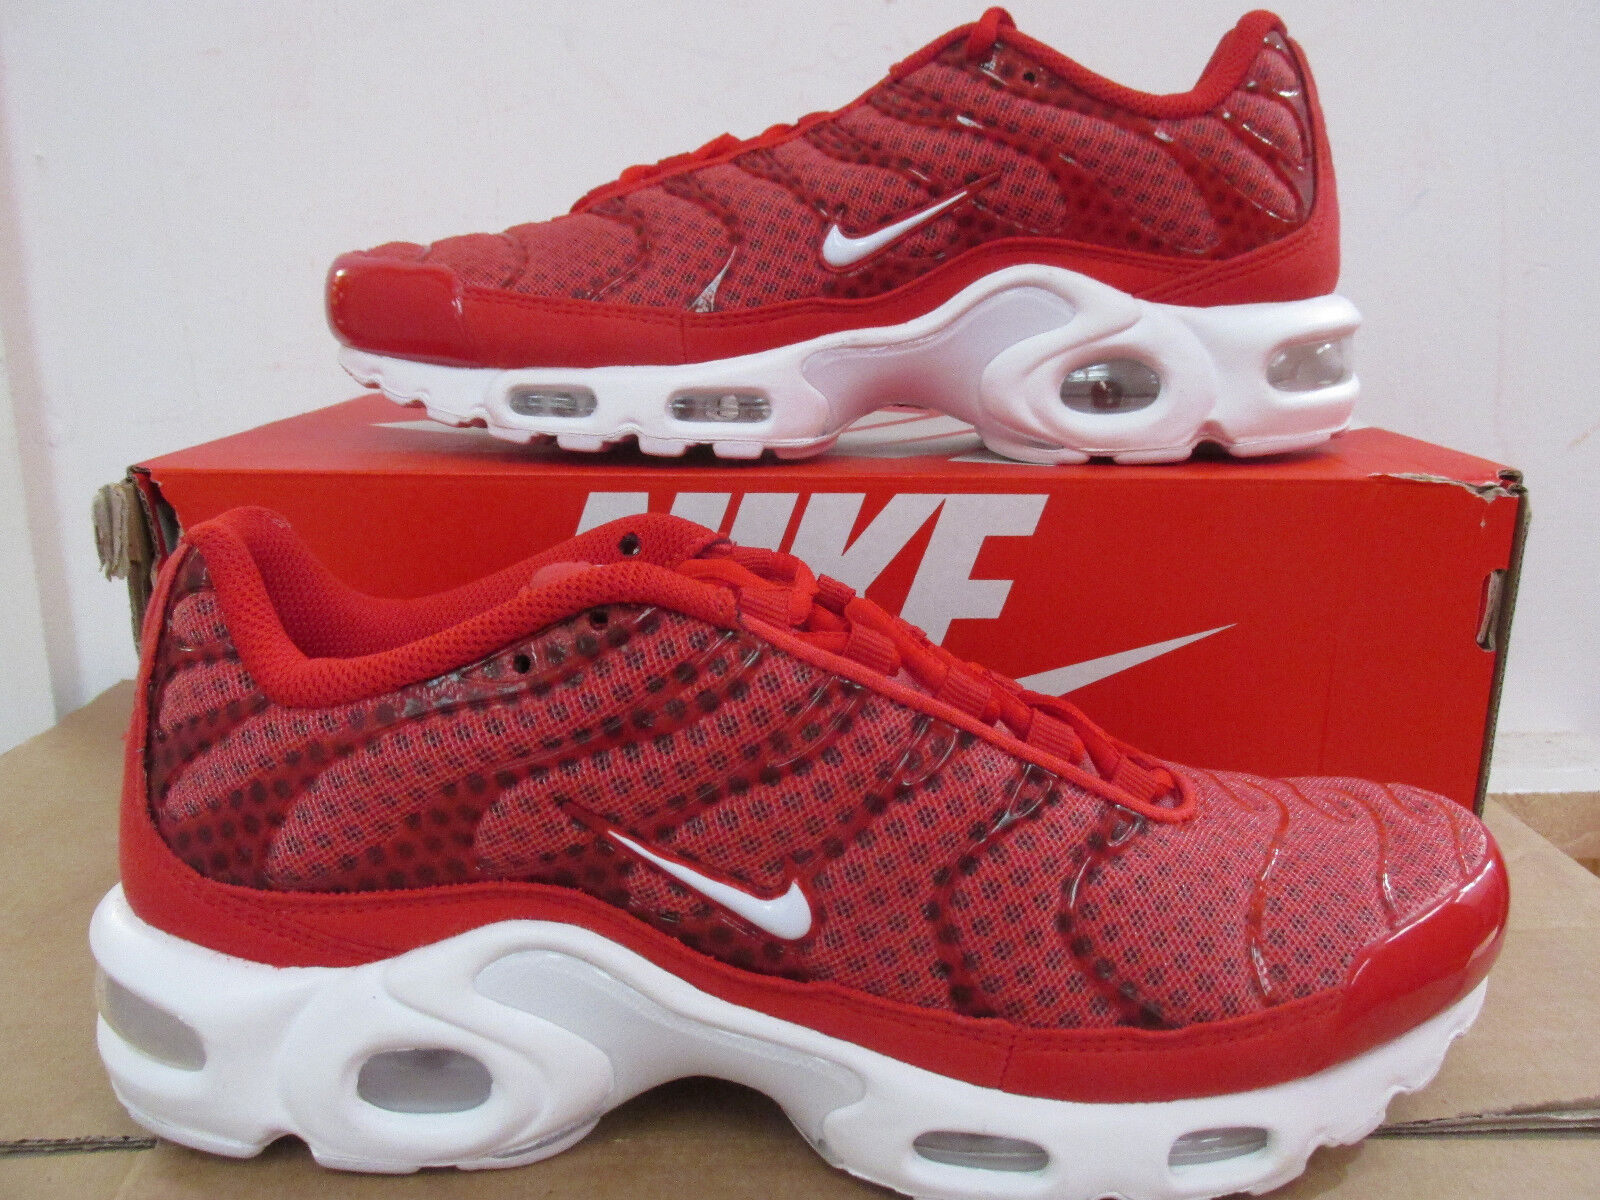 nike air max plus TXT homme  running trainers 647315  611 Baskets  chaussures  647315 CLEARANCE 16949d